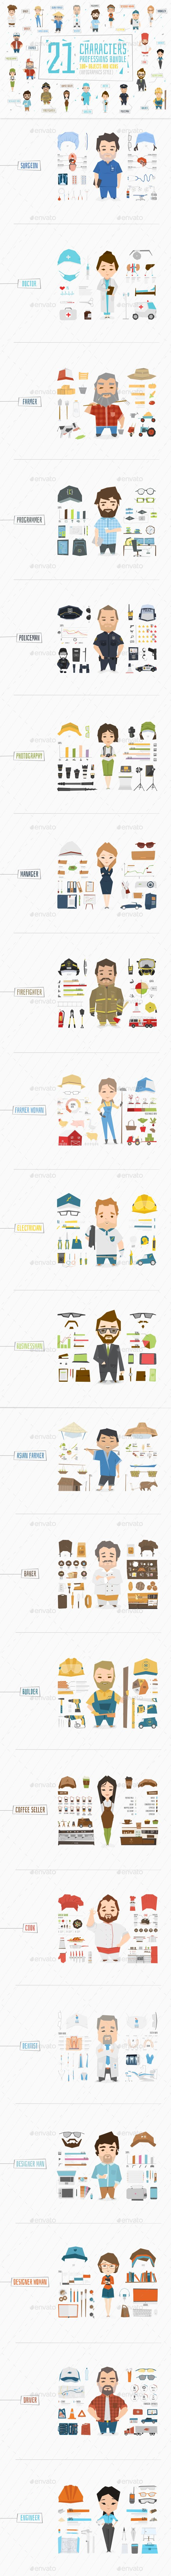 21 Professions Characters Vector EPS, AI Illustrator. Download here: https://graphicriver.net/item/21-professions-characters/14040075?ref=ksioks